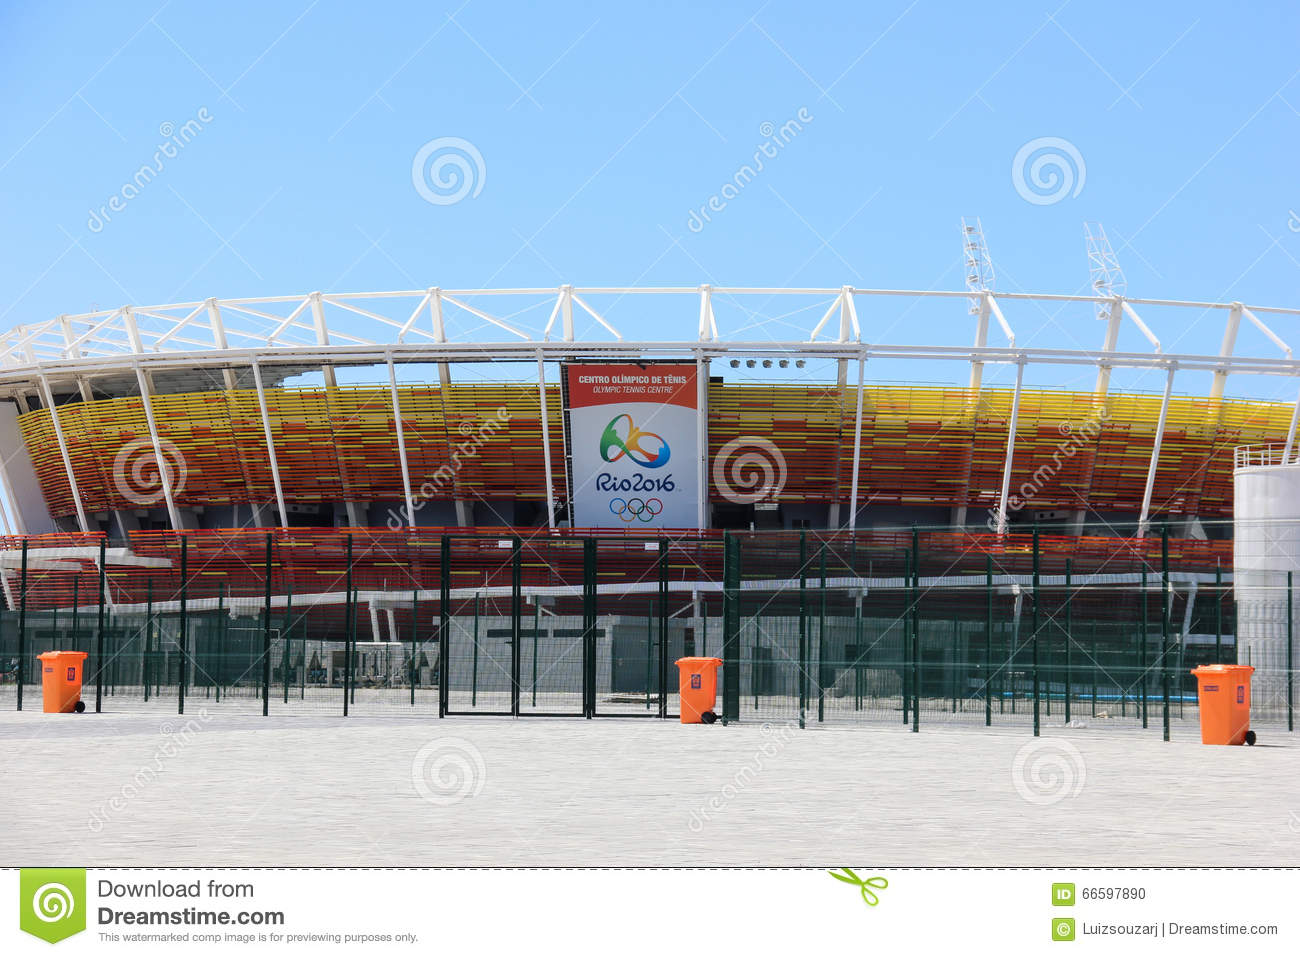 Progress of construction of the Rio 2016 Olympic Park